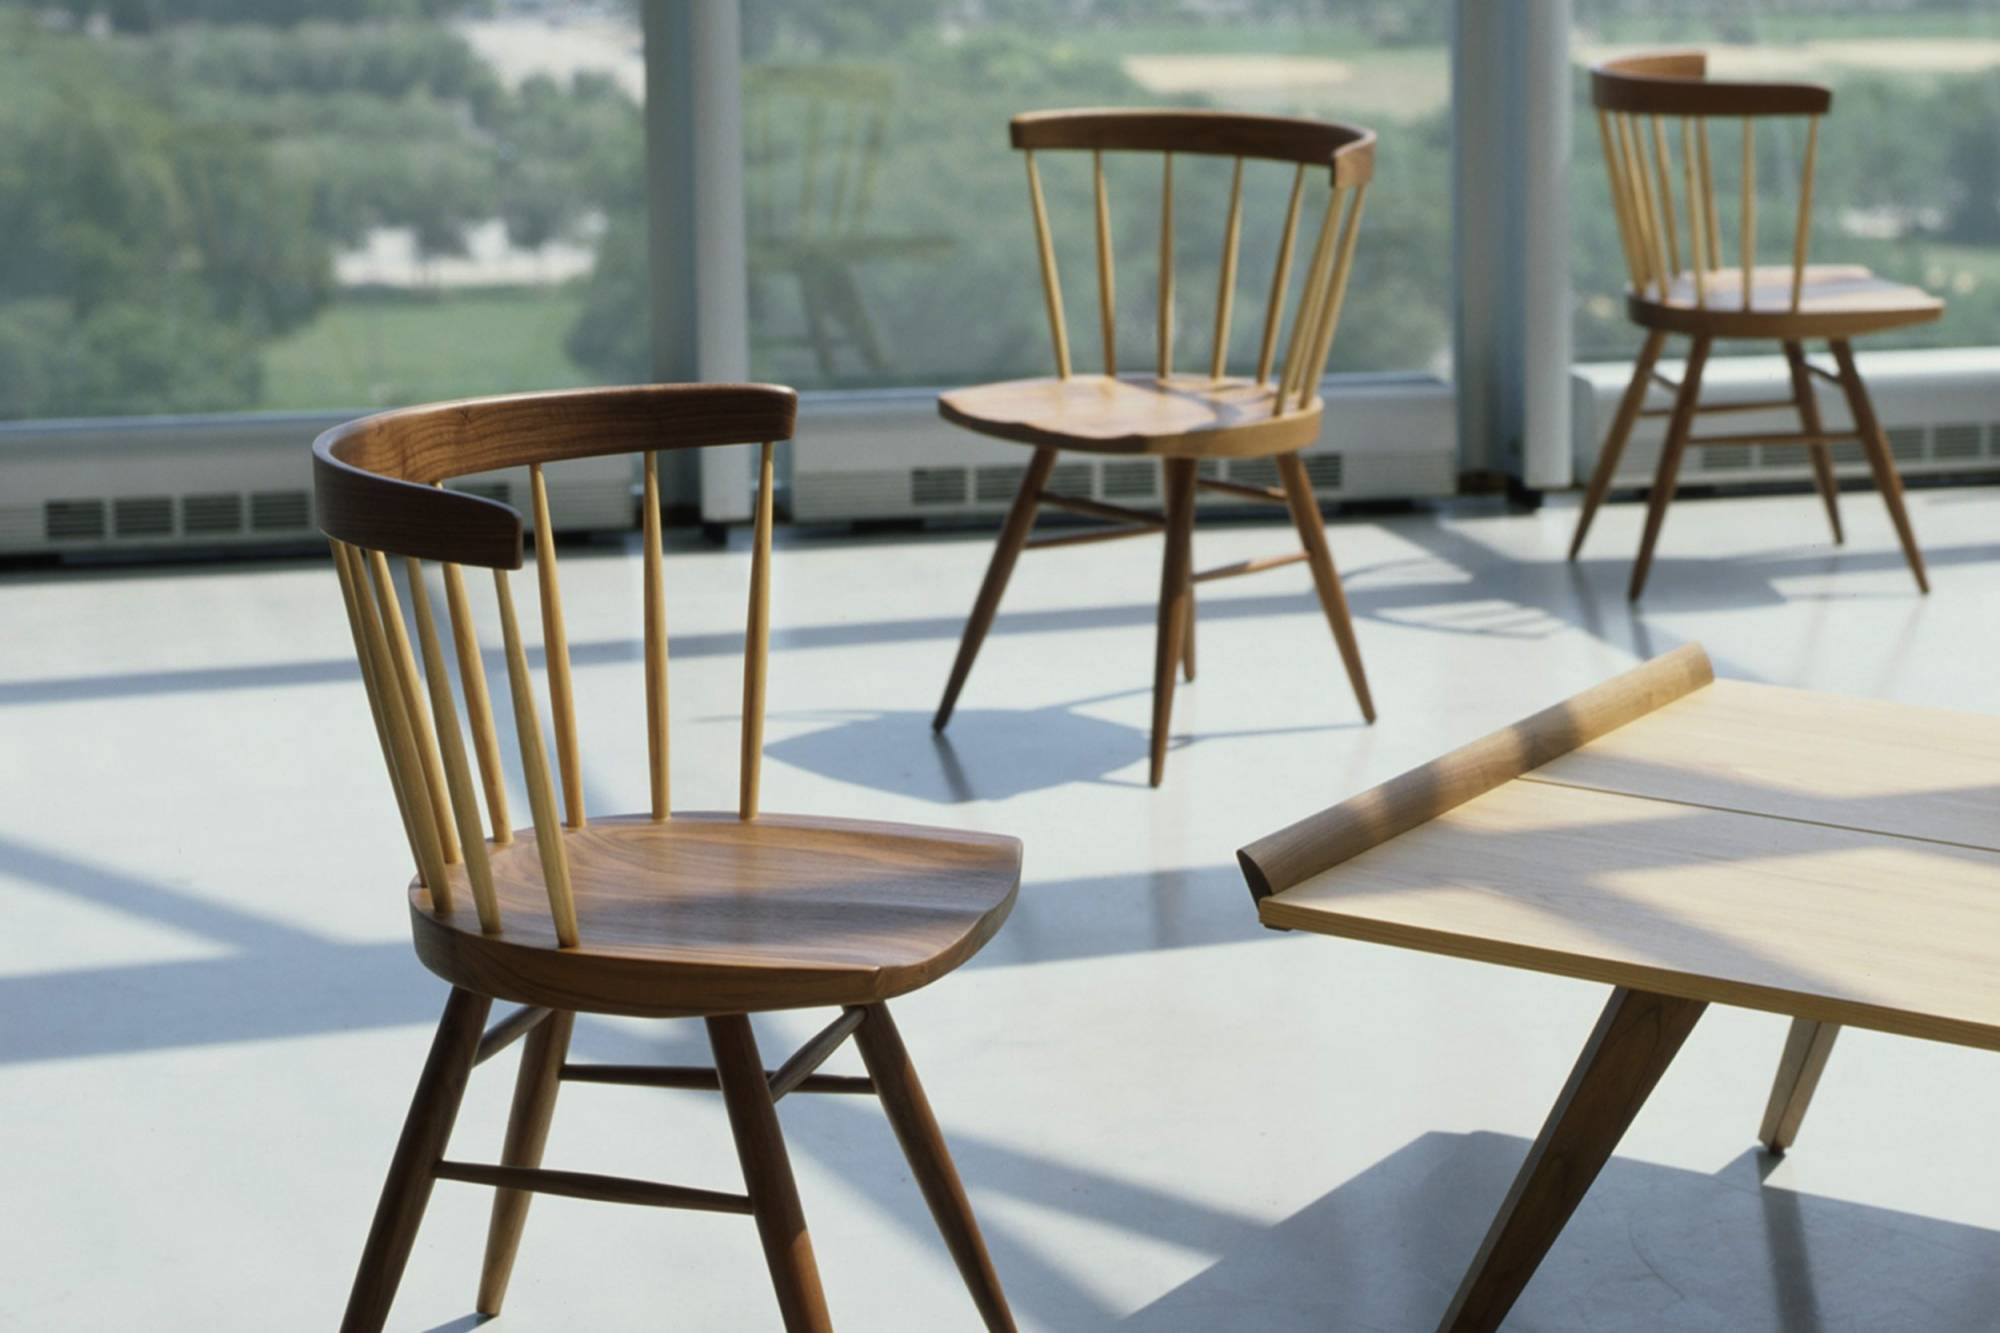 chair stools bar lift shooter rear philbee gas straight collections interiors